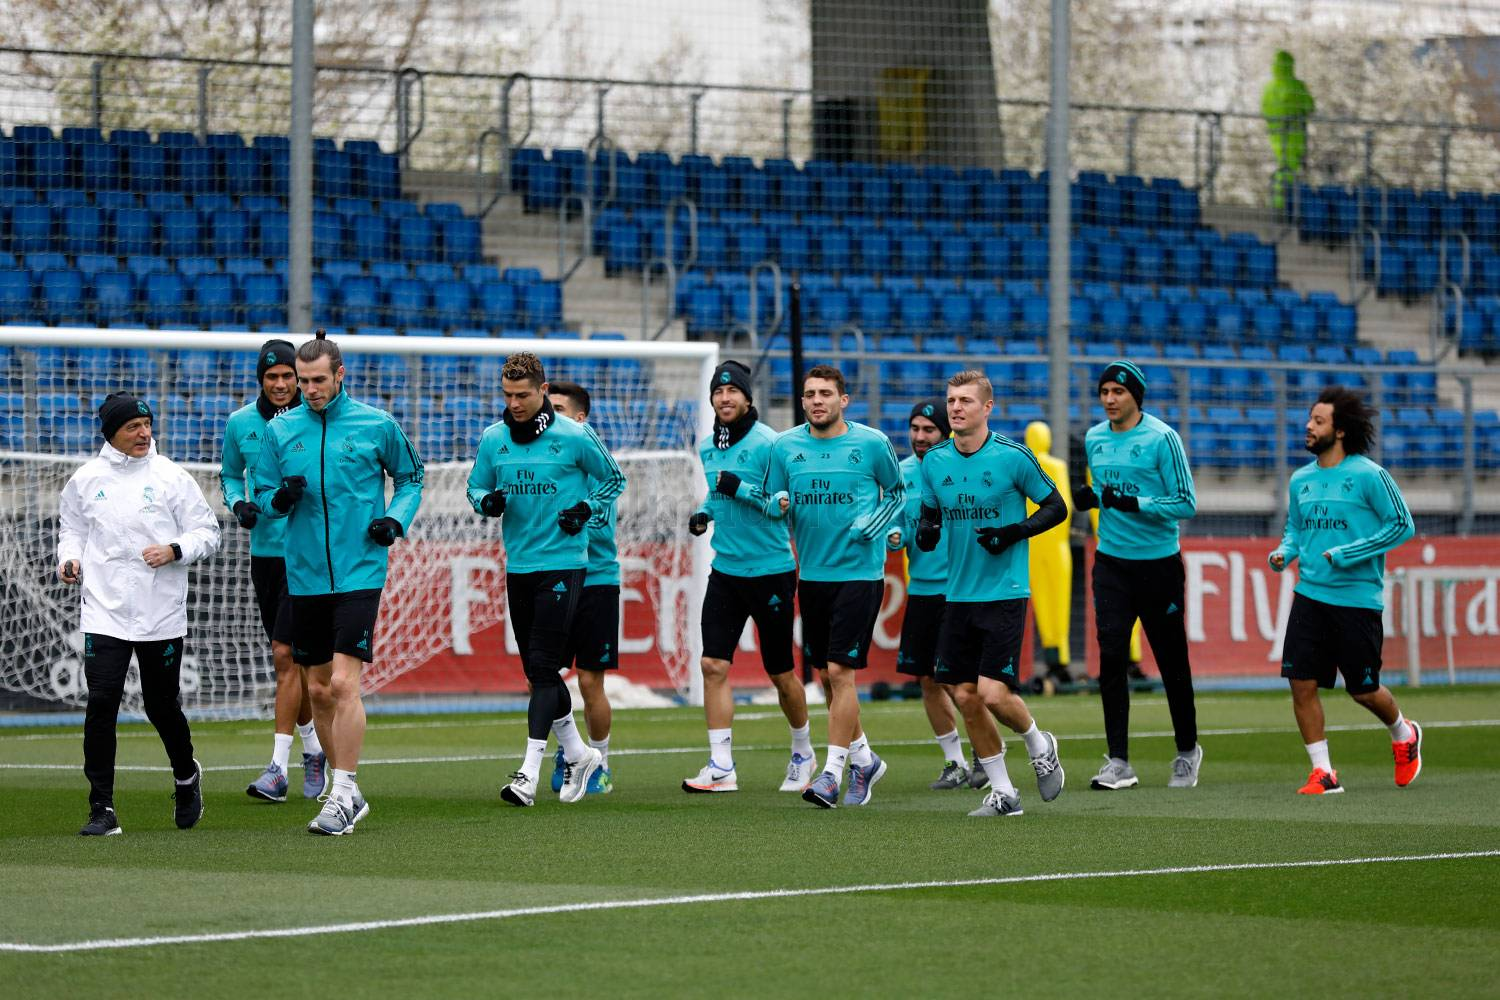 Real Madrid - Entrenamiento del Real Madrid - 09-04-2018